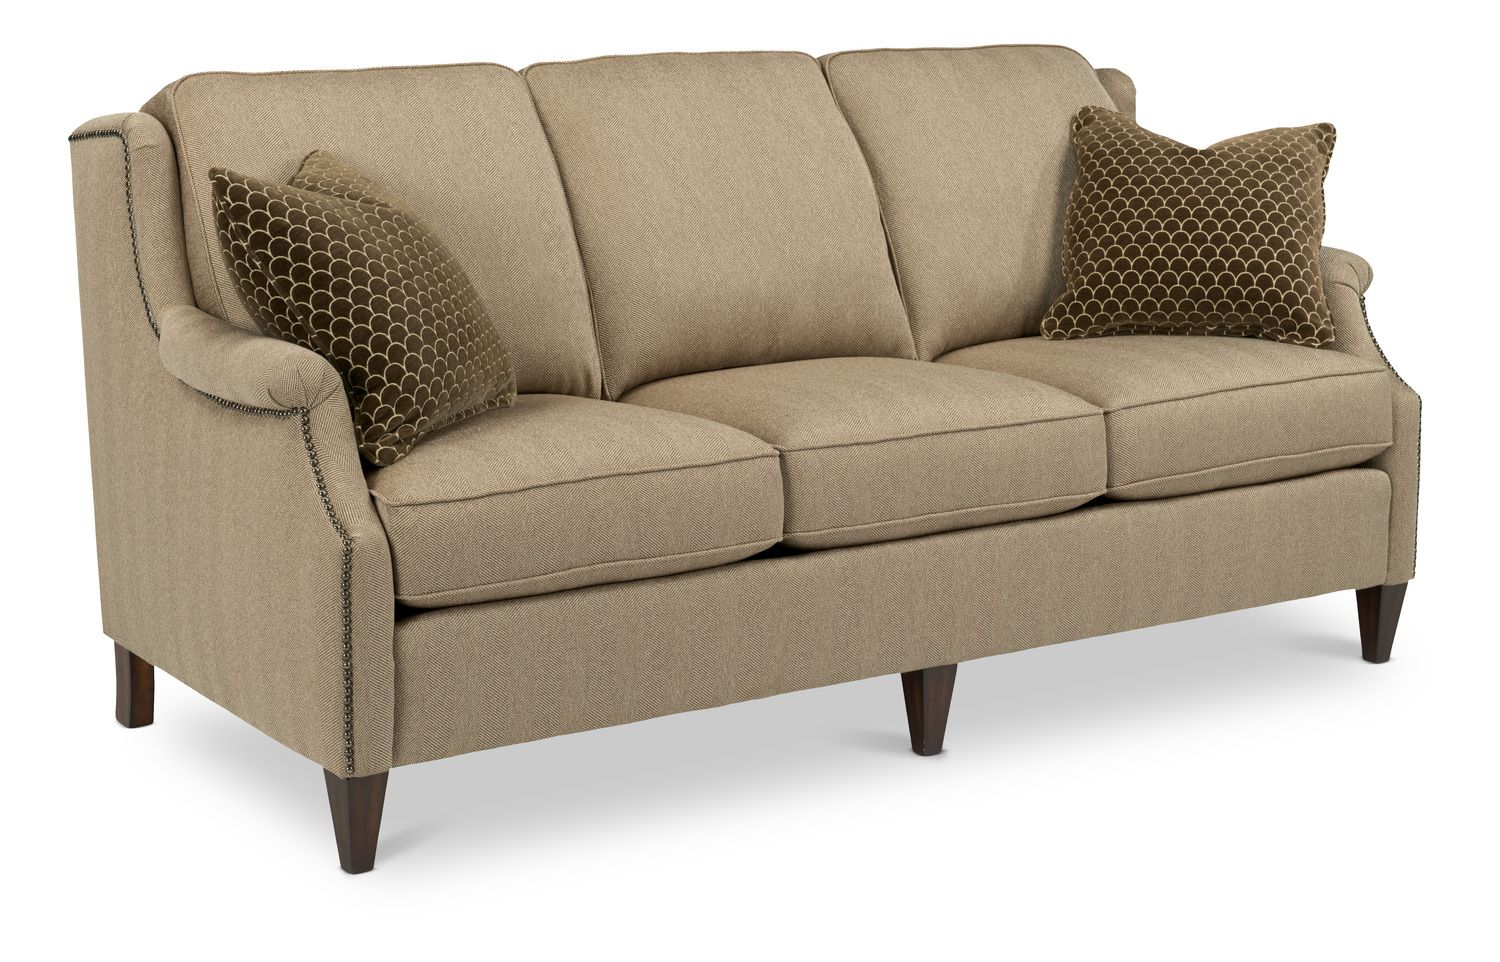 Shop For Flexsteel Fabric Sofa, And Other Living Room Sofas At Direct  Furniture Galleries In Fairfax, VA. The Zevon Style Is A Uniquely  Traditional Style ...